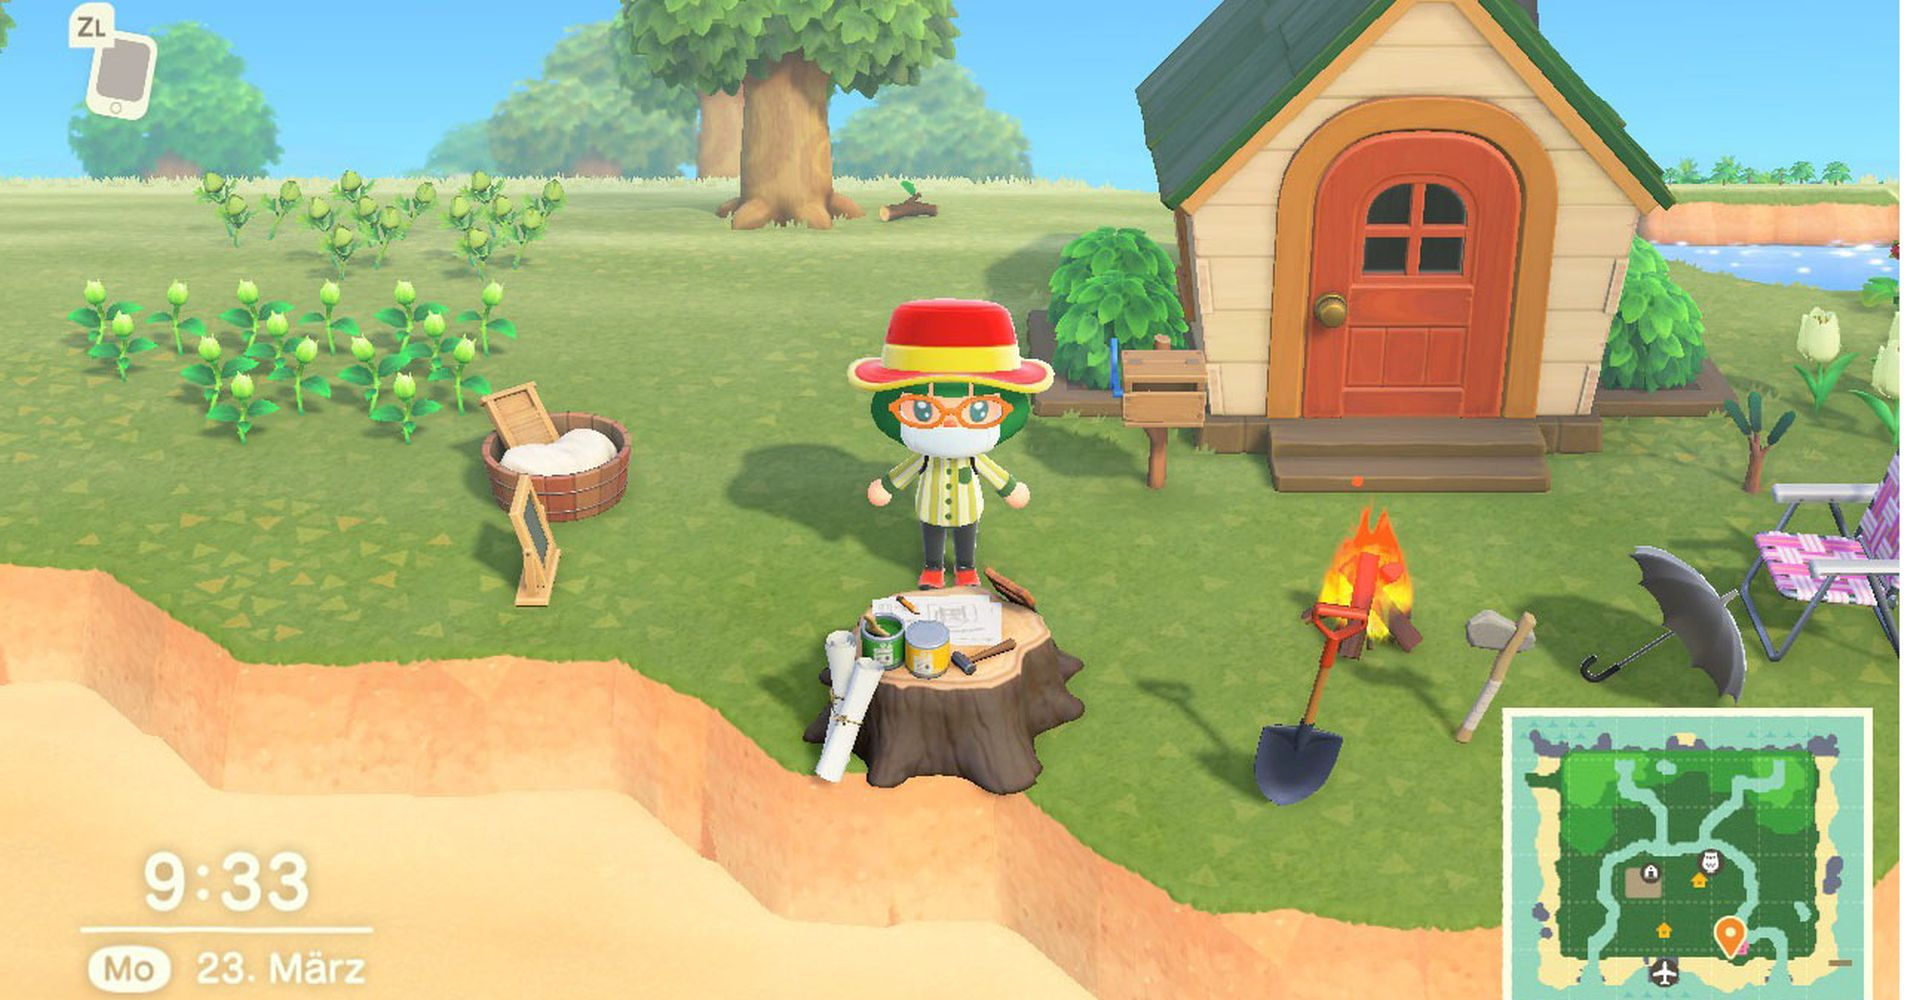 Das Haus in Animal Crossing: New Horizons.